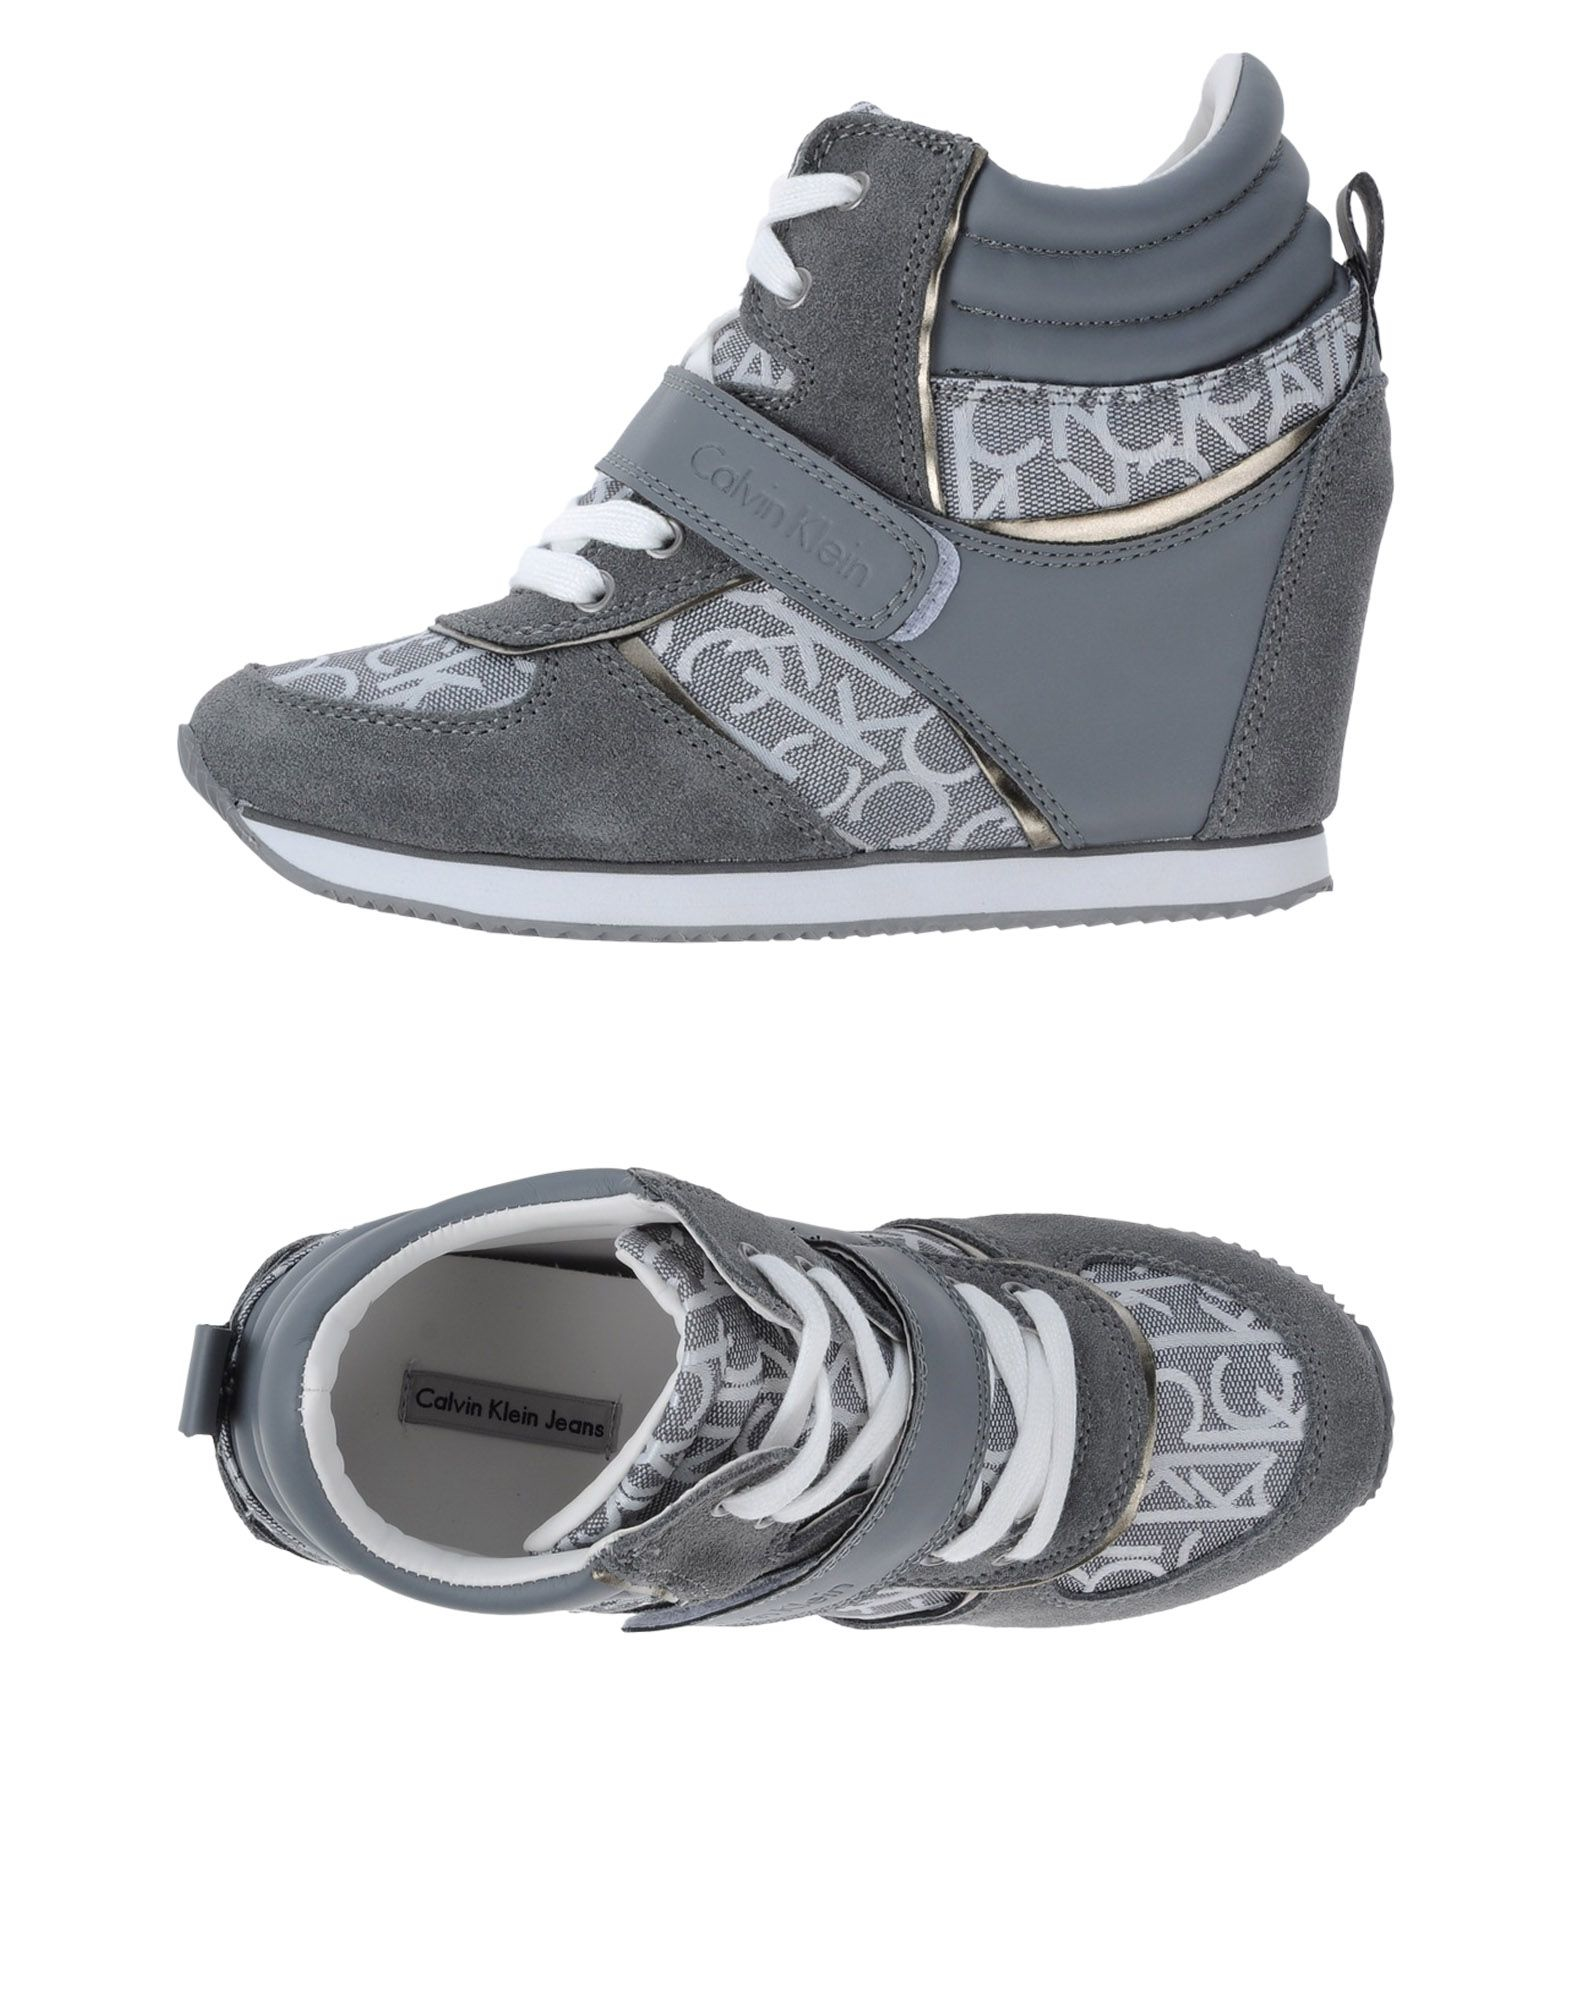 calvin klein jeans high tops trainers in gray lyst. Black Bedroom Furniture Sets. Home Design Ideas